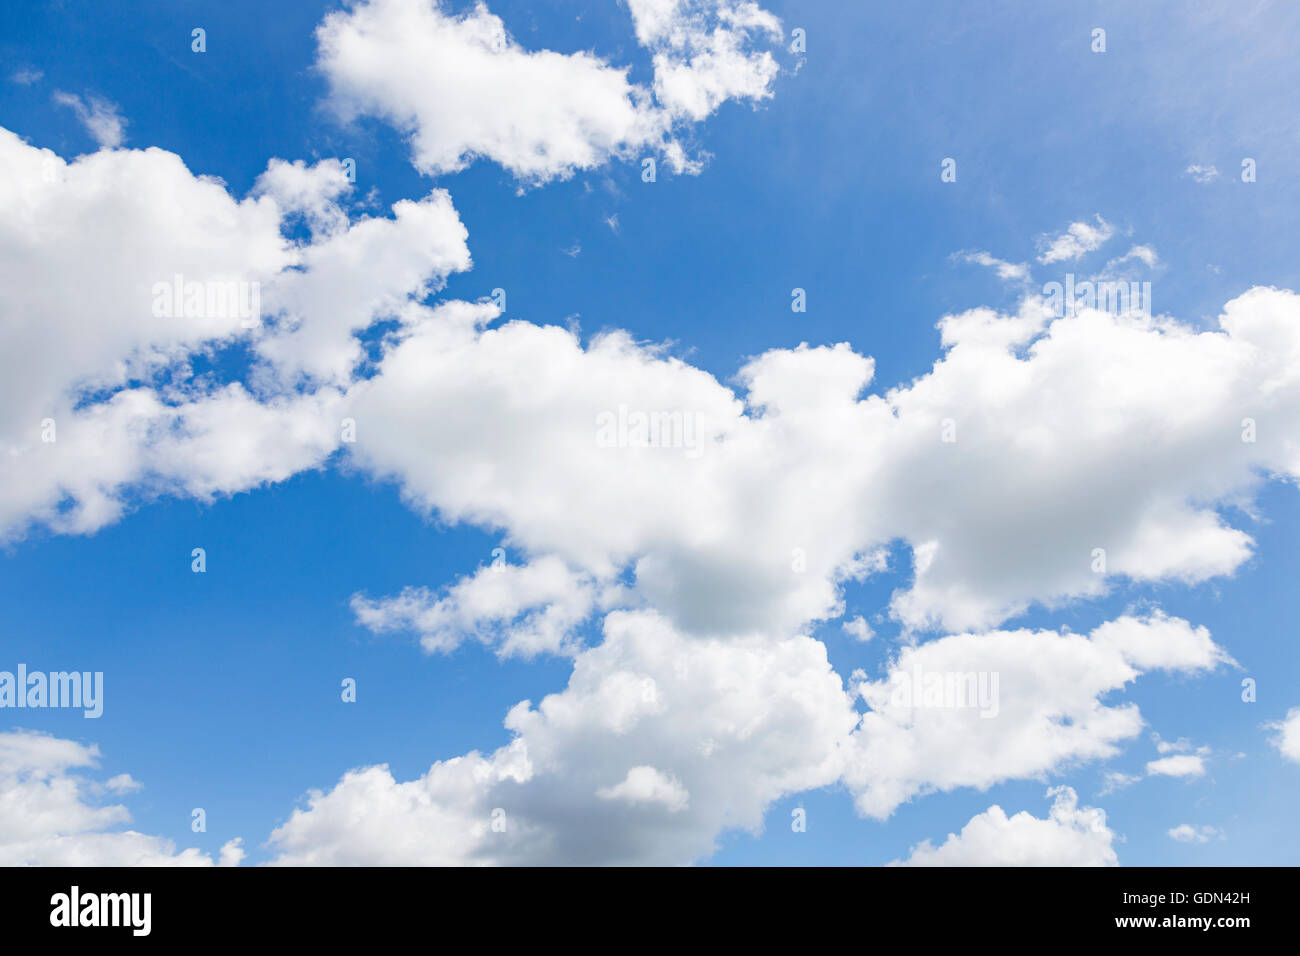 Cumulus clouds in blue sky, England - Stock Image